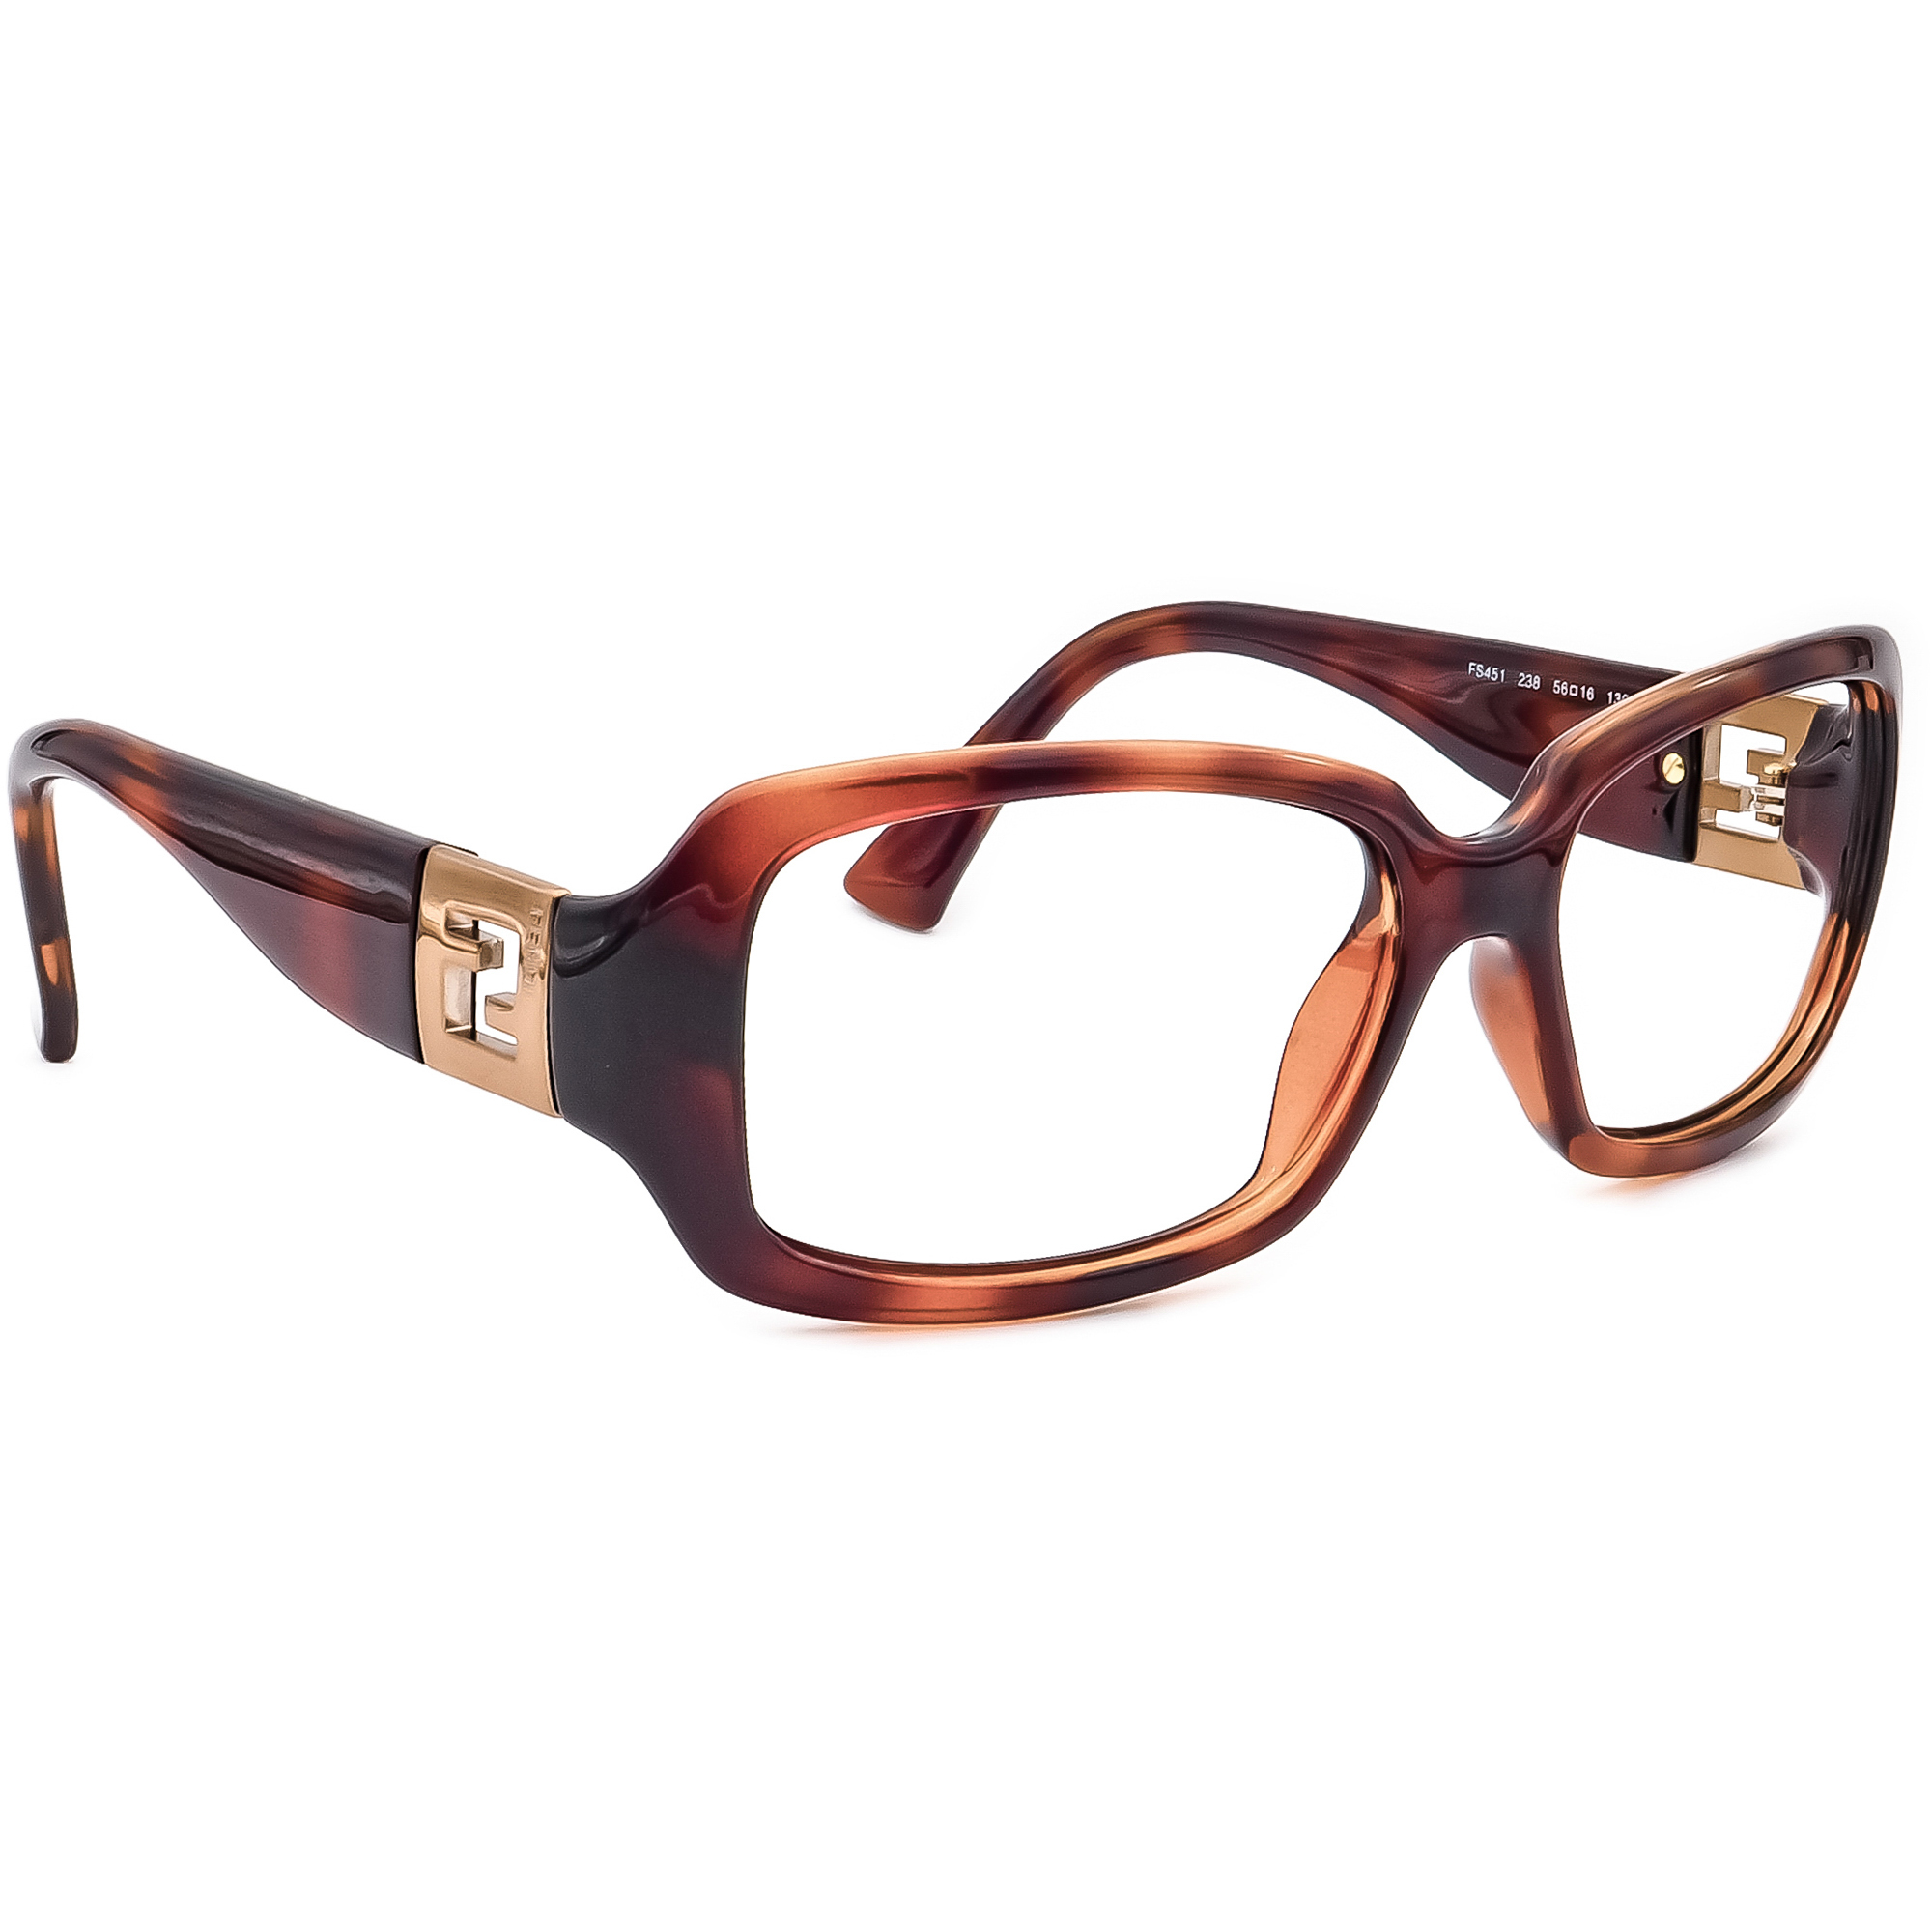 Fendi Women's Sunglasses Frame Only FS451 238 Dark Havana Rectangular Italy 56mm